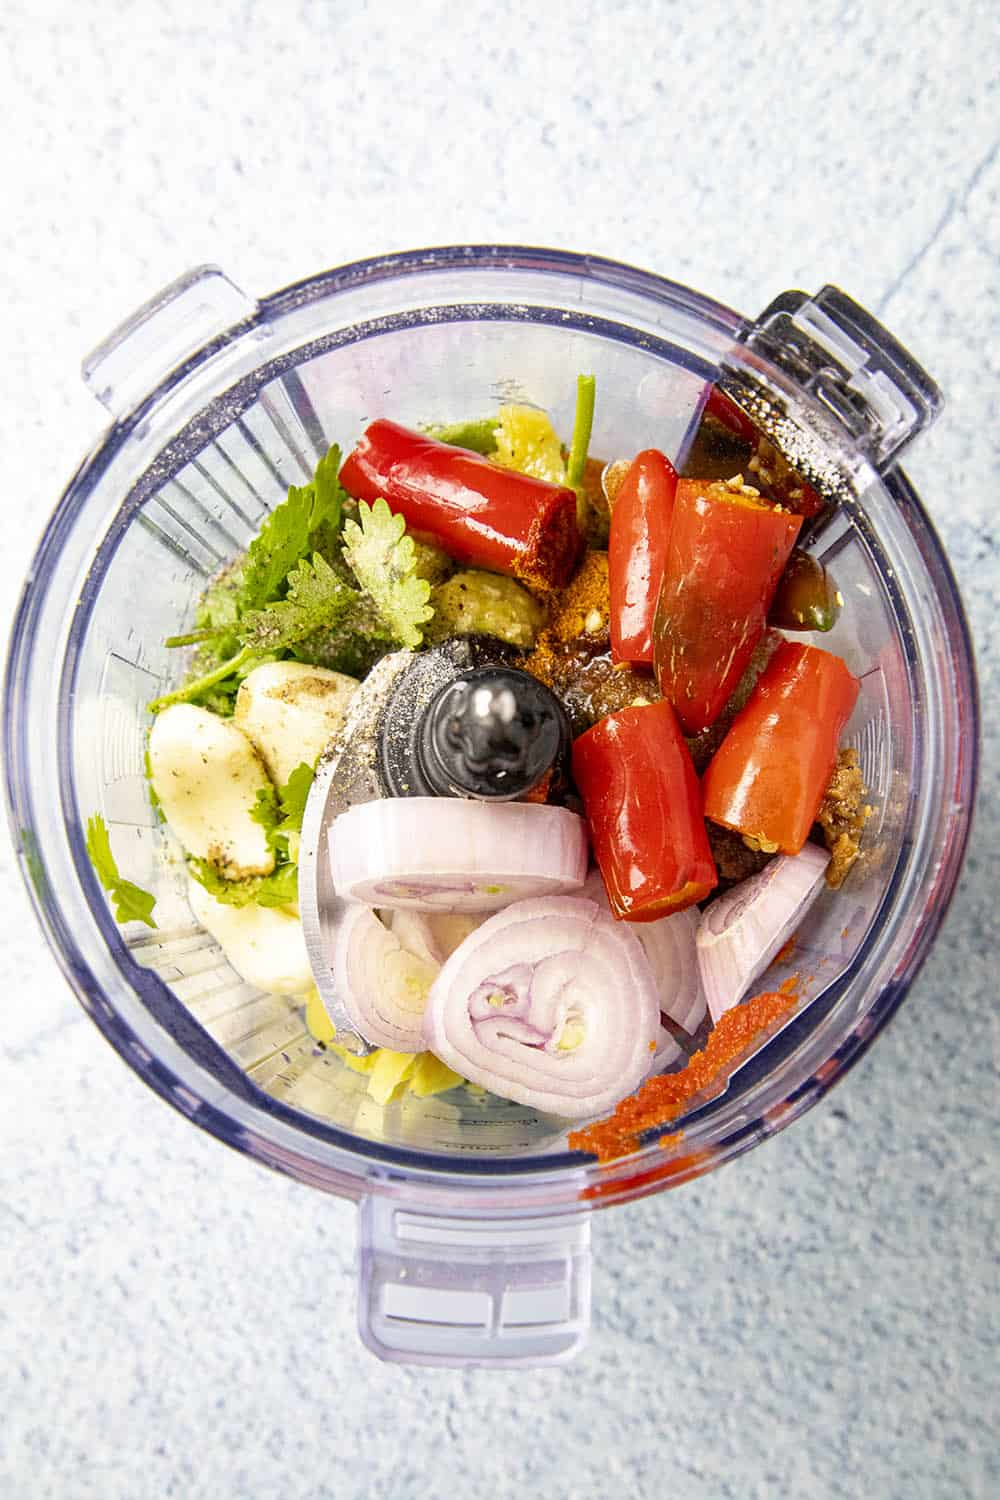 The ingredients in a blender to make Thai red curry paste